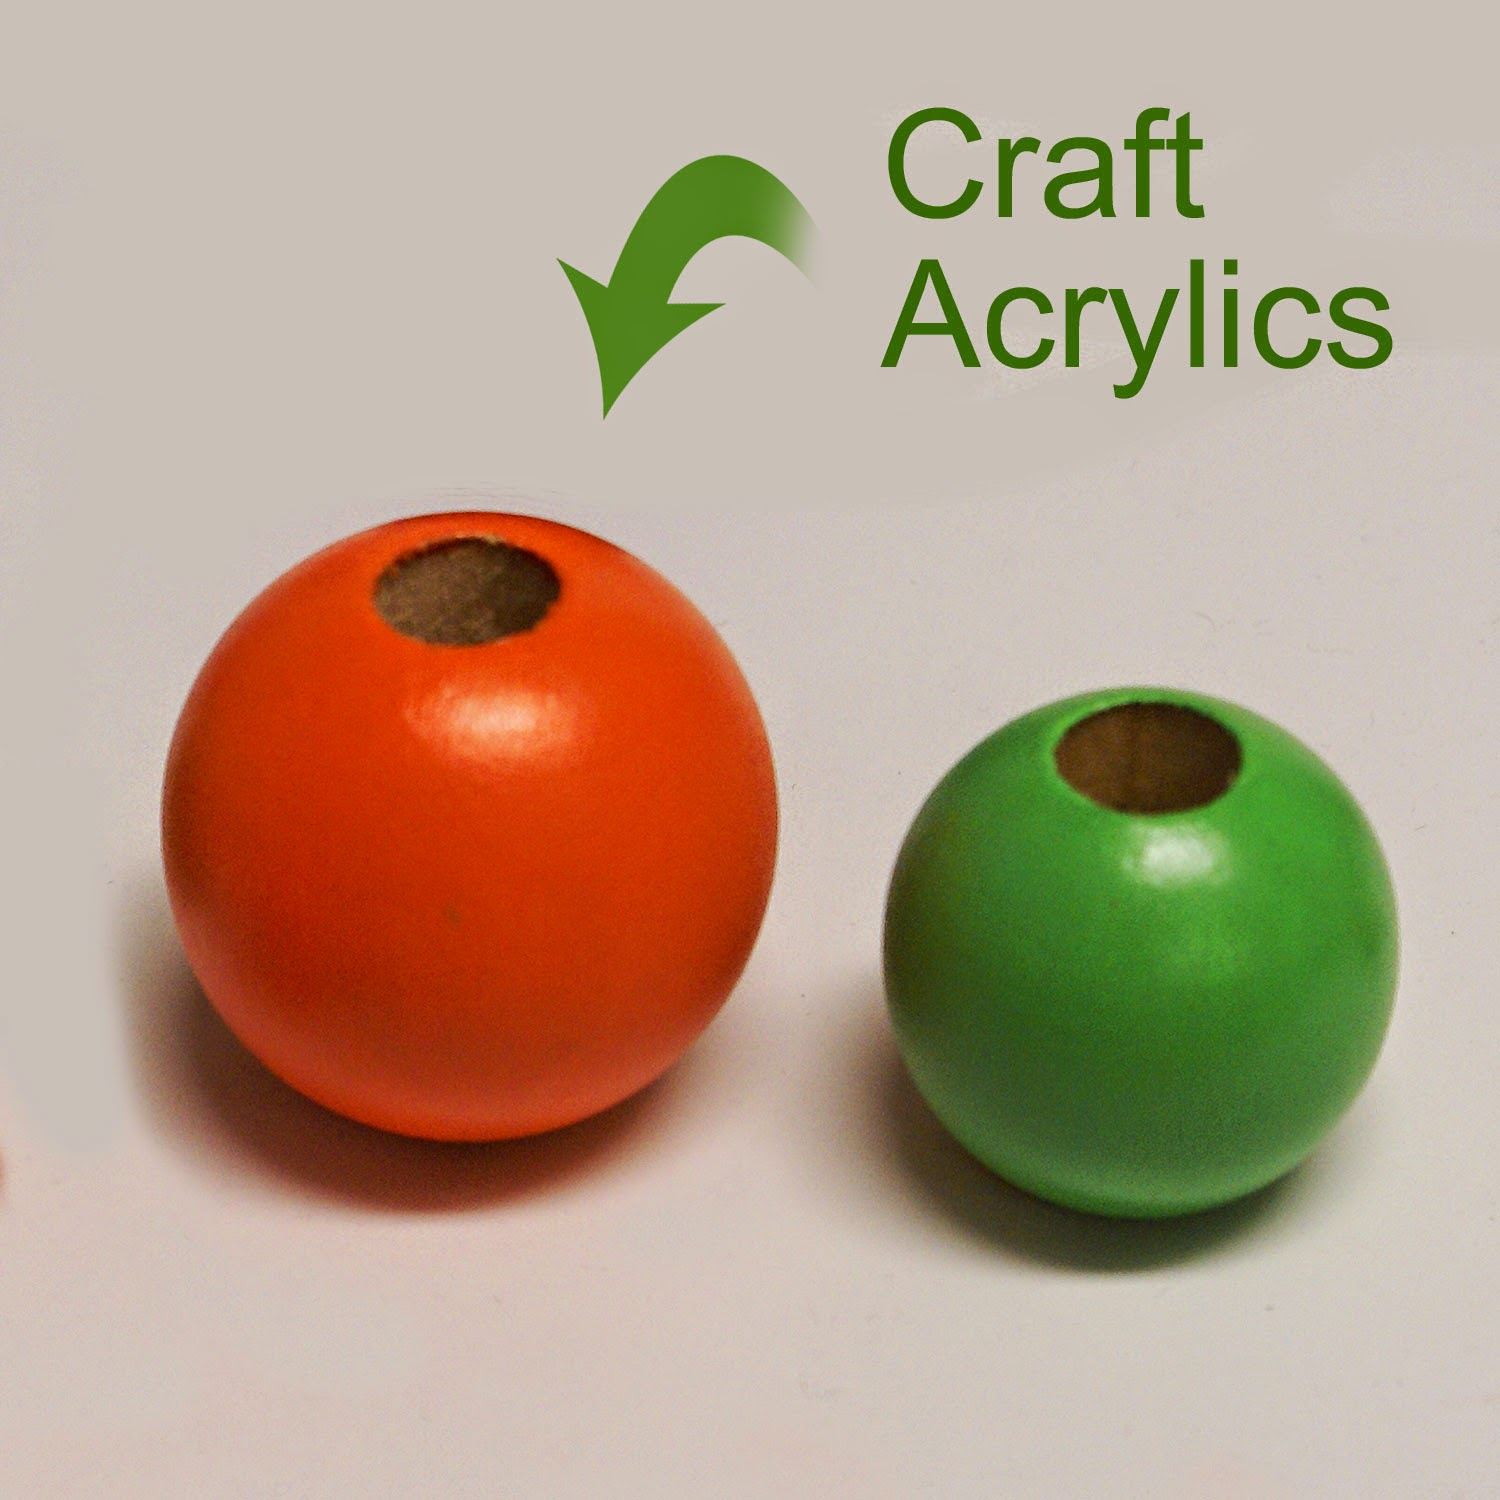 Craft acrylic painted beads will require a gloss coat finish.